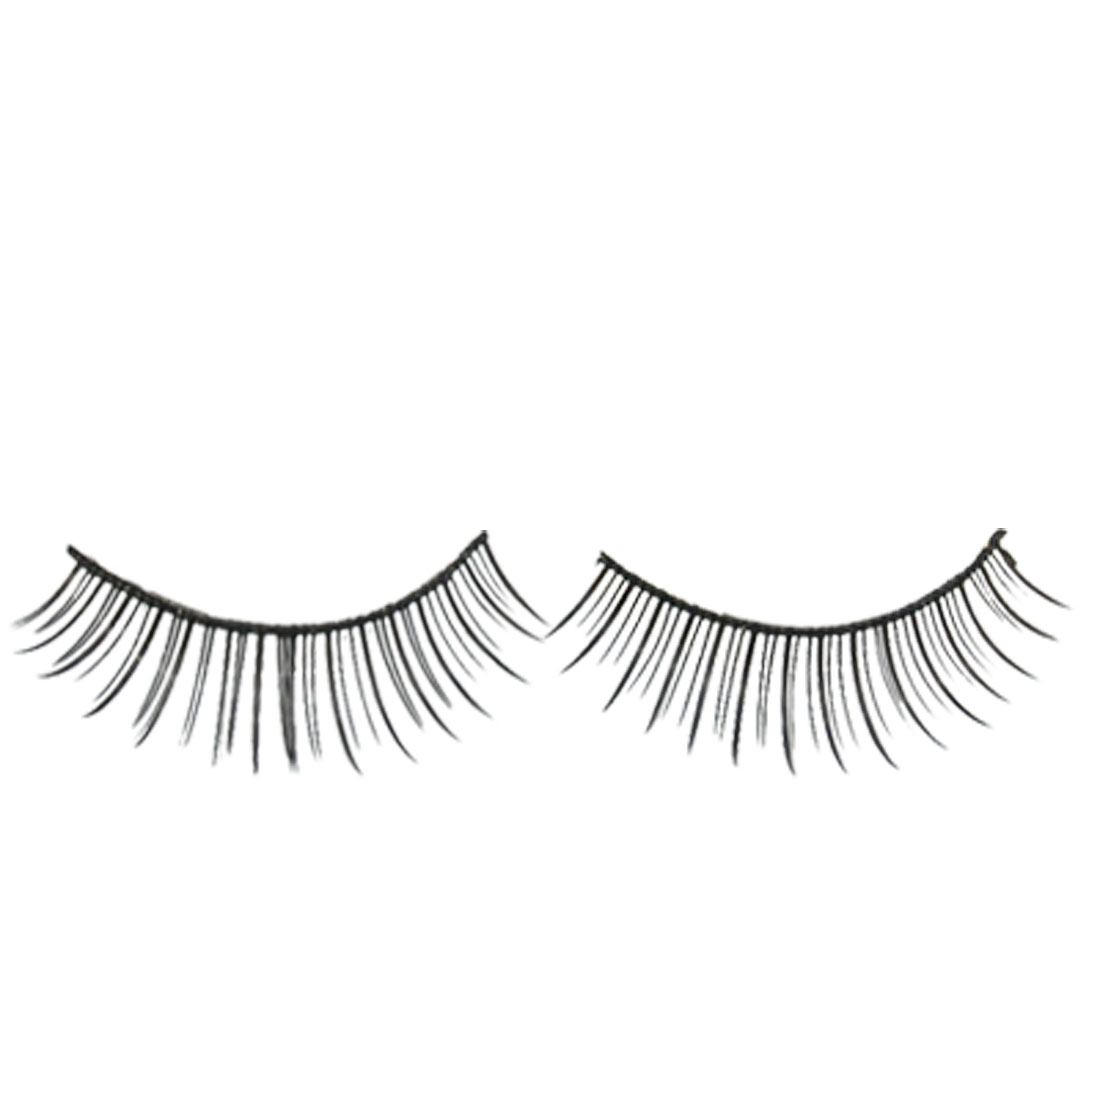 Black False Fake Eyelashes Makeup Eye Lashes 1 Pair